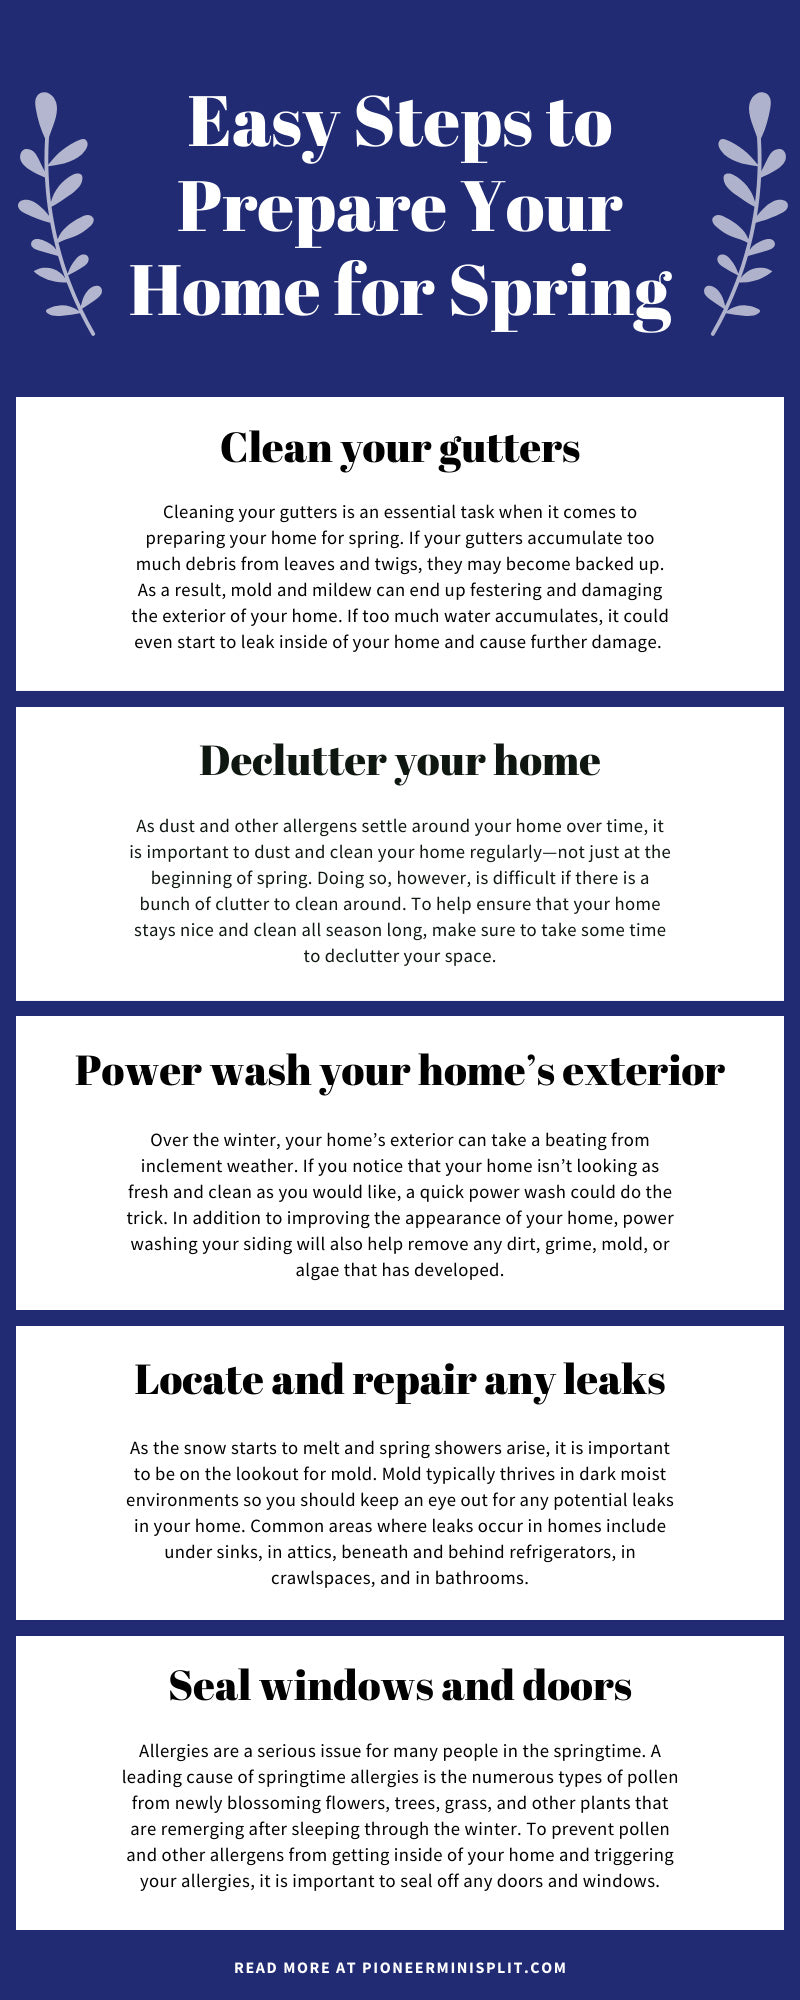 Easy Steps to Prepare Your Home for Spring